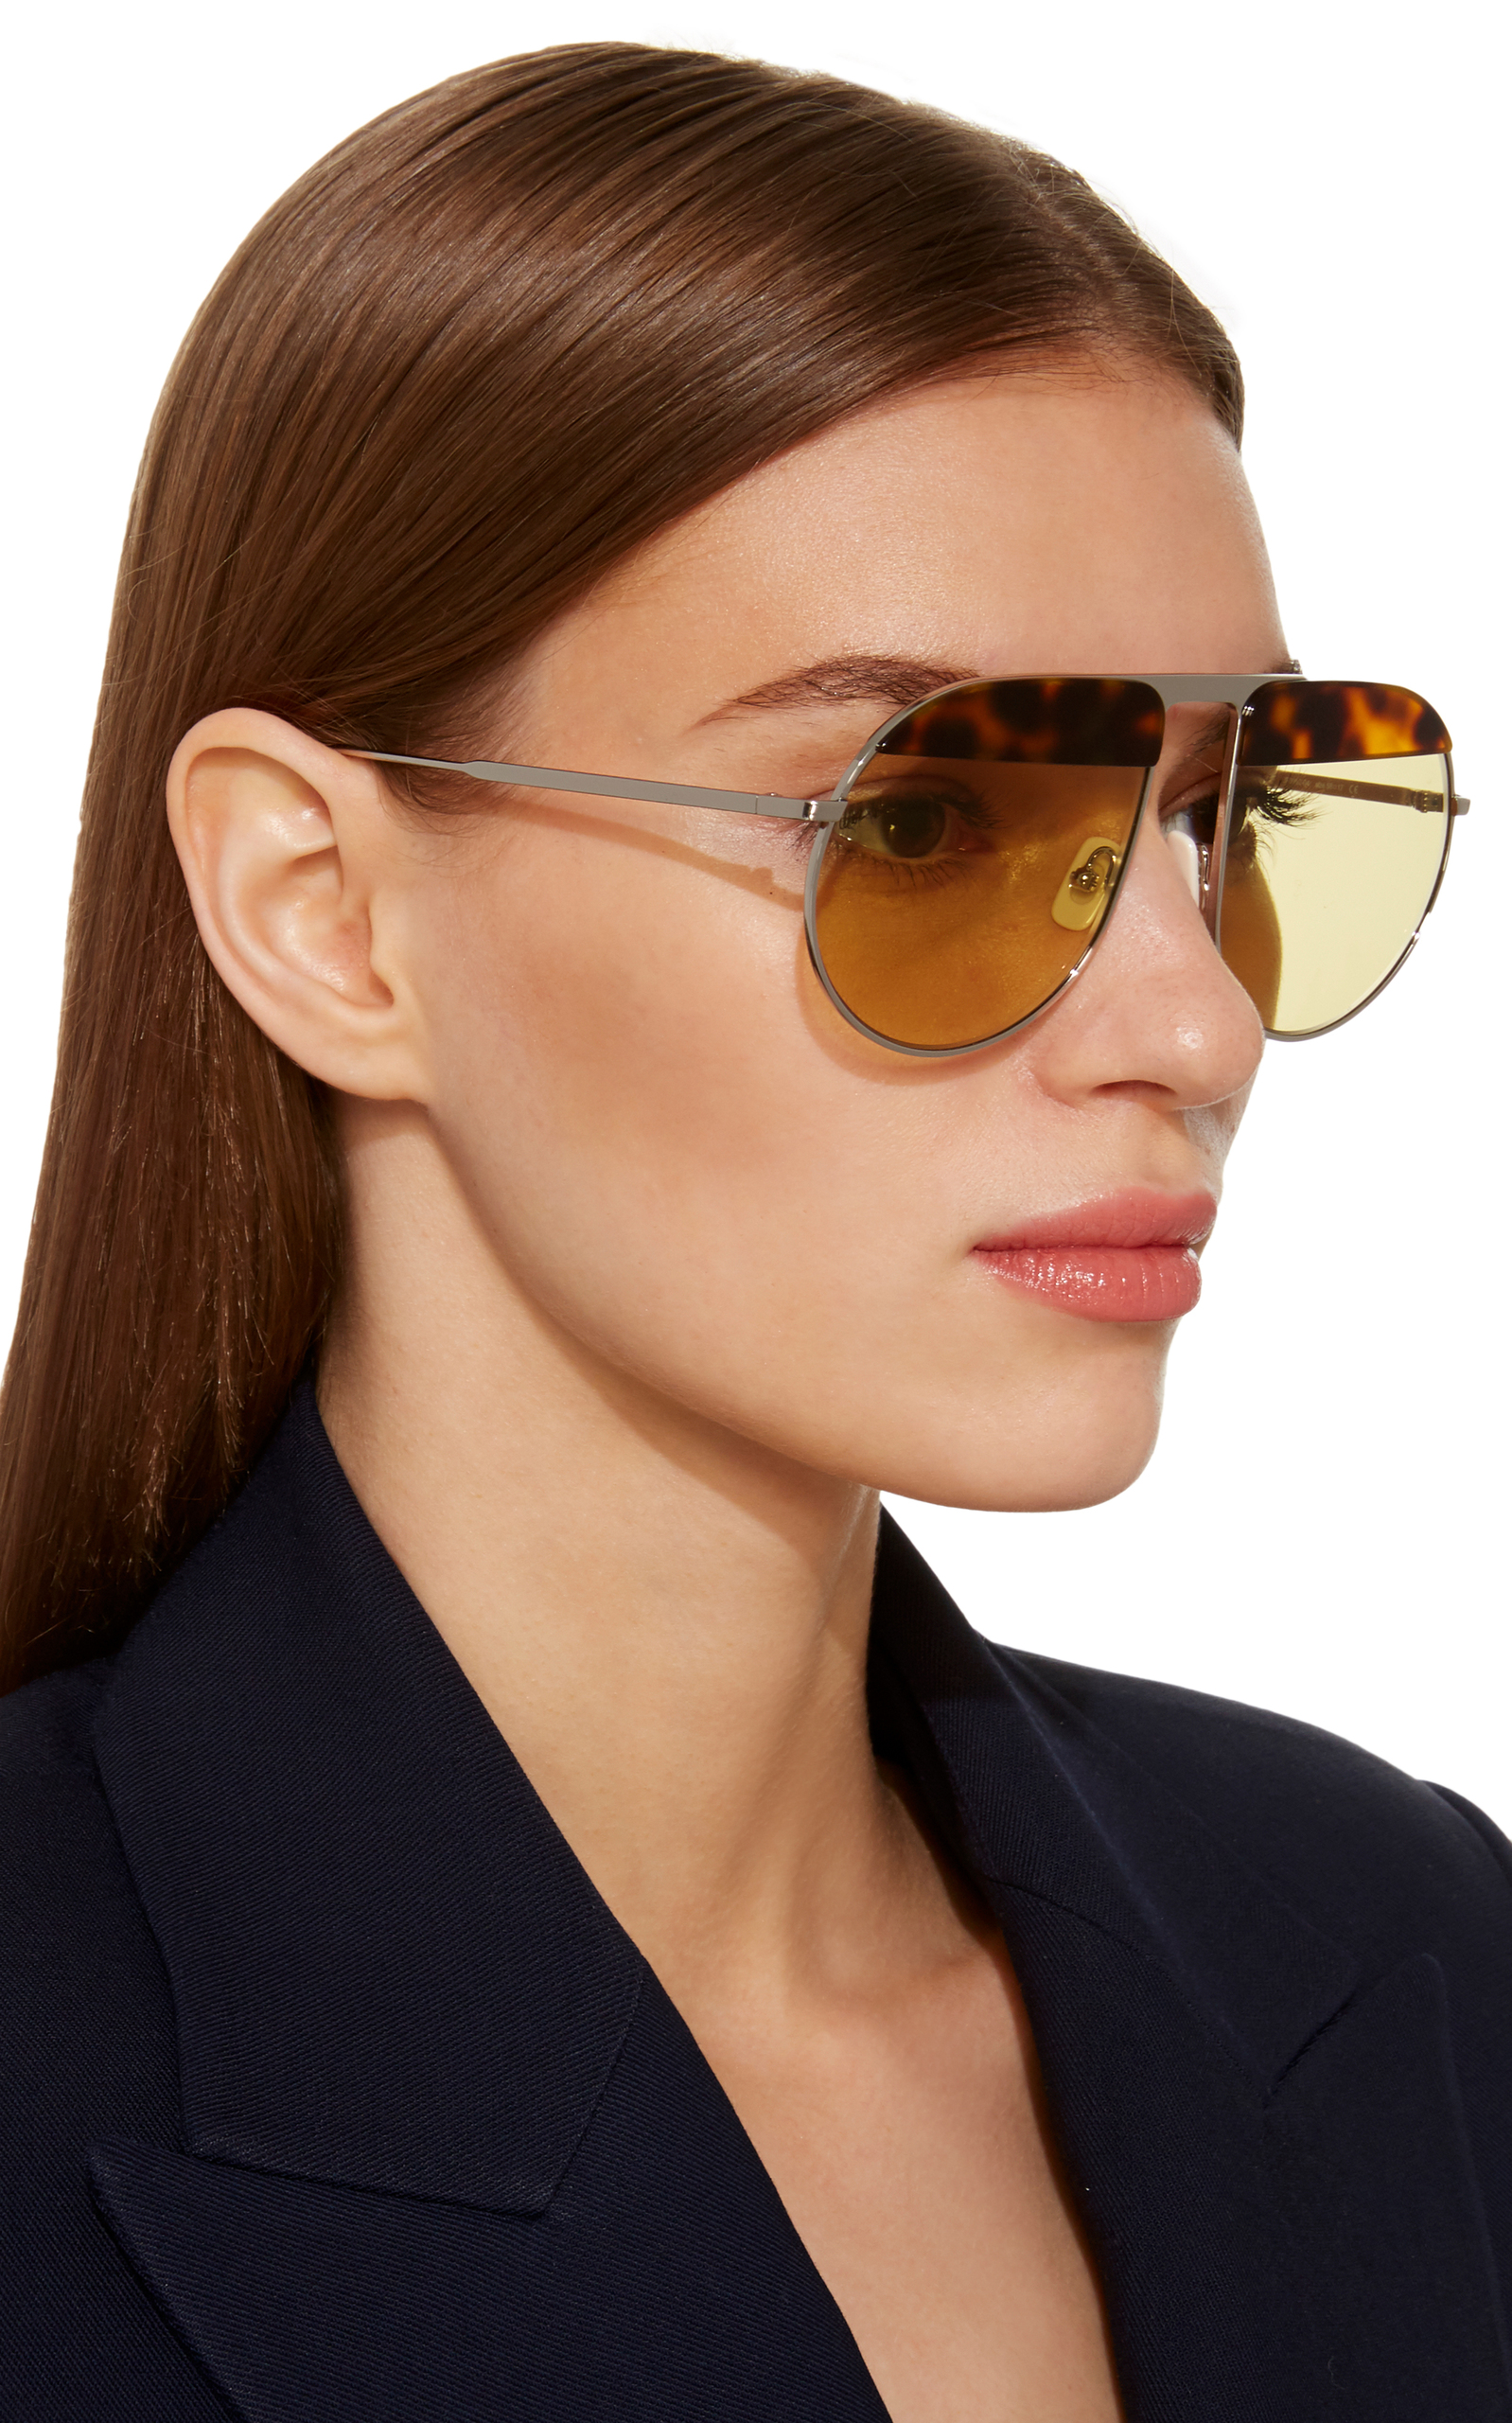 Pilot Metal and Tortoiseshell Acetate Sunglasses Jplus Fda1uu